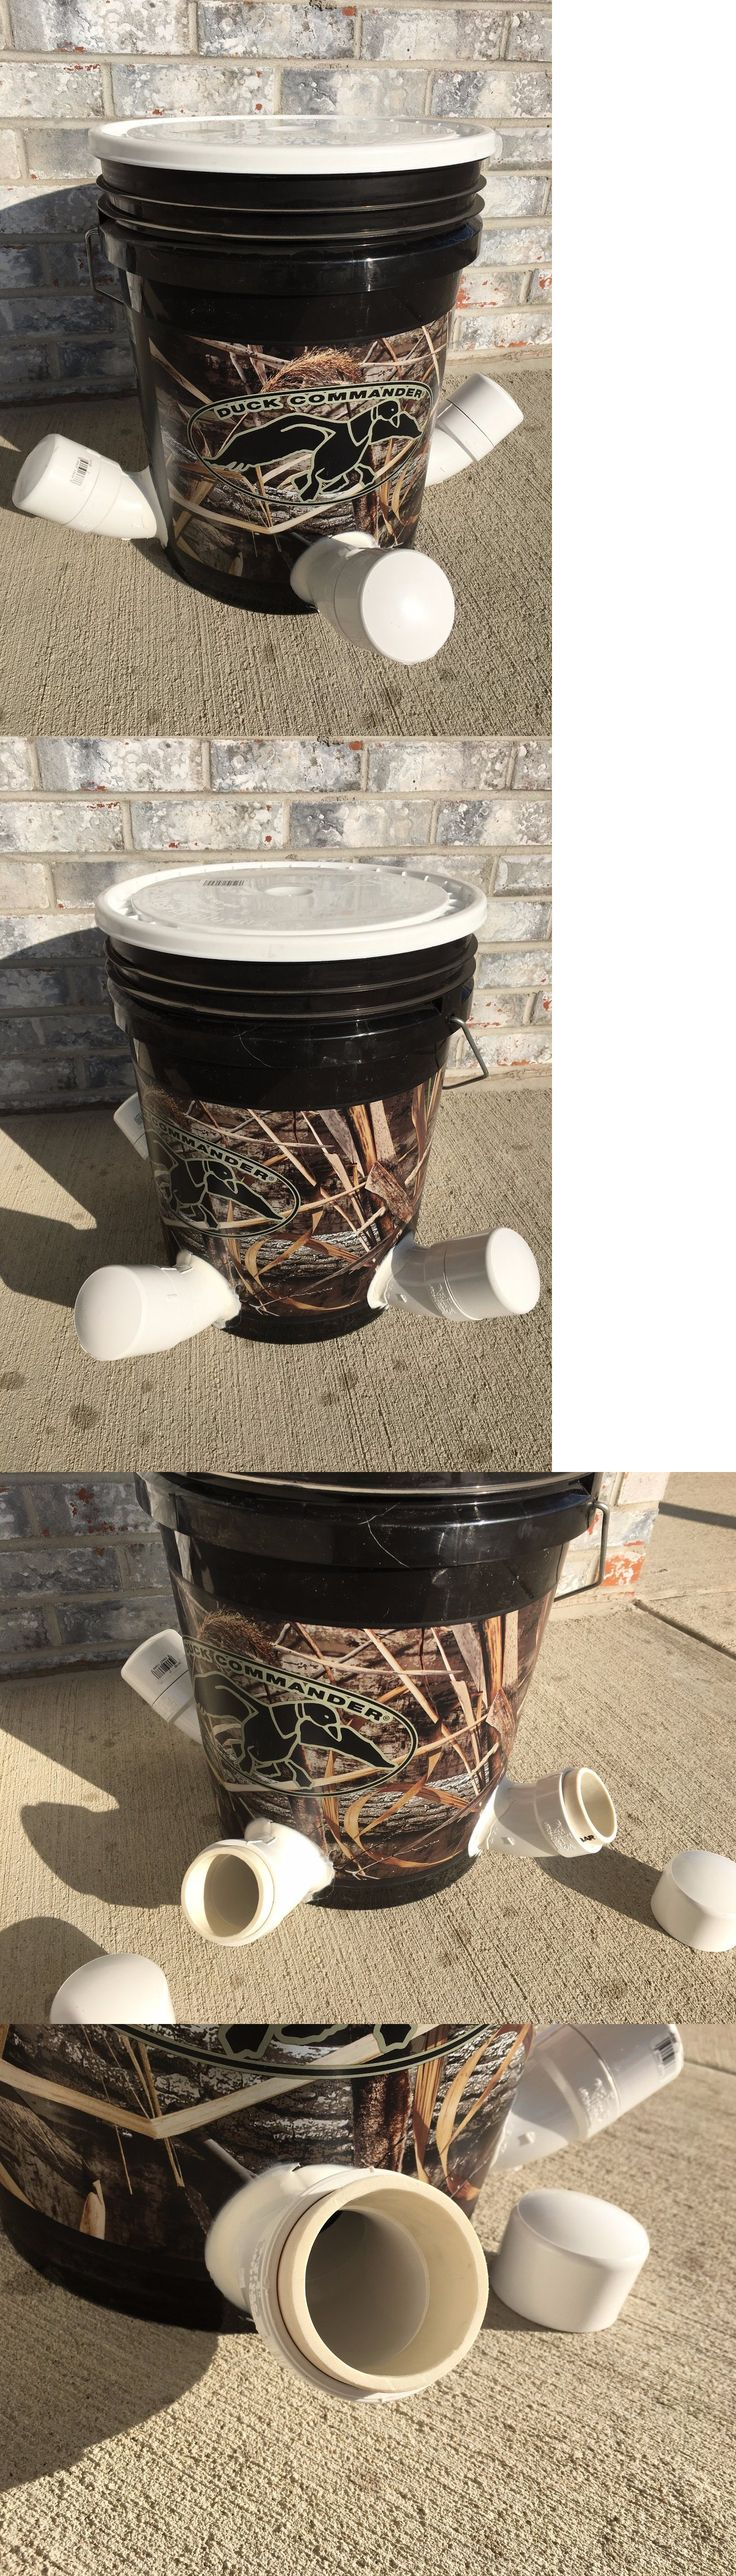 Backyard Poultry Supplies 177801: Labor Day Special Automatic Chicken Duck Commander Dynasty Feeder Bucket, Etsy -> BUY IT NOW ONLY: $45.99 on eBay!